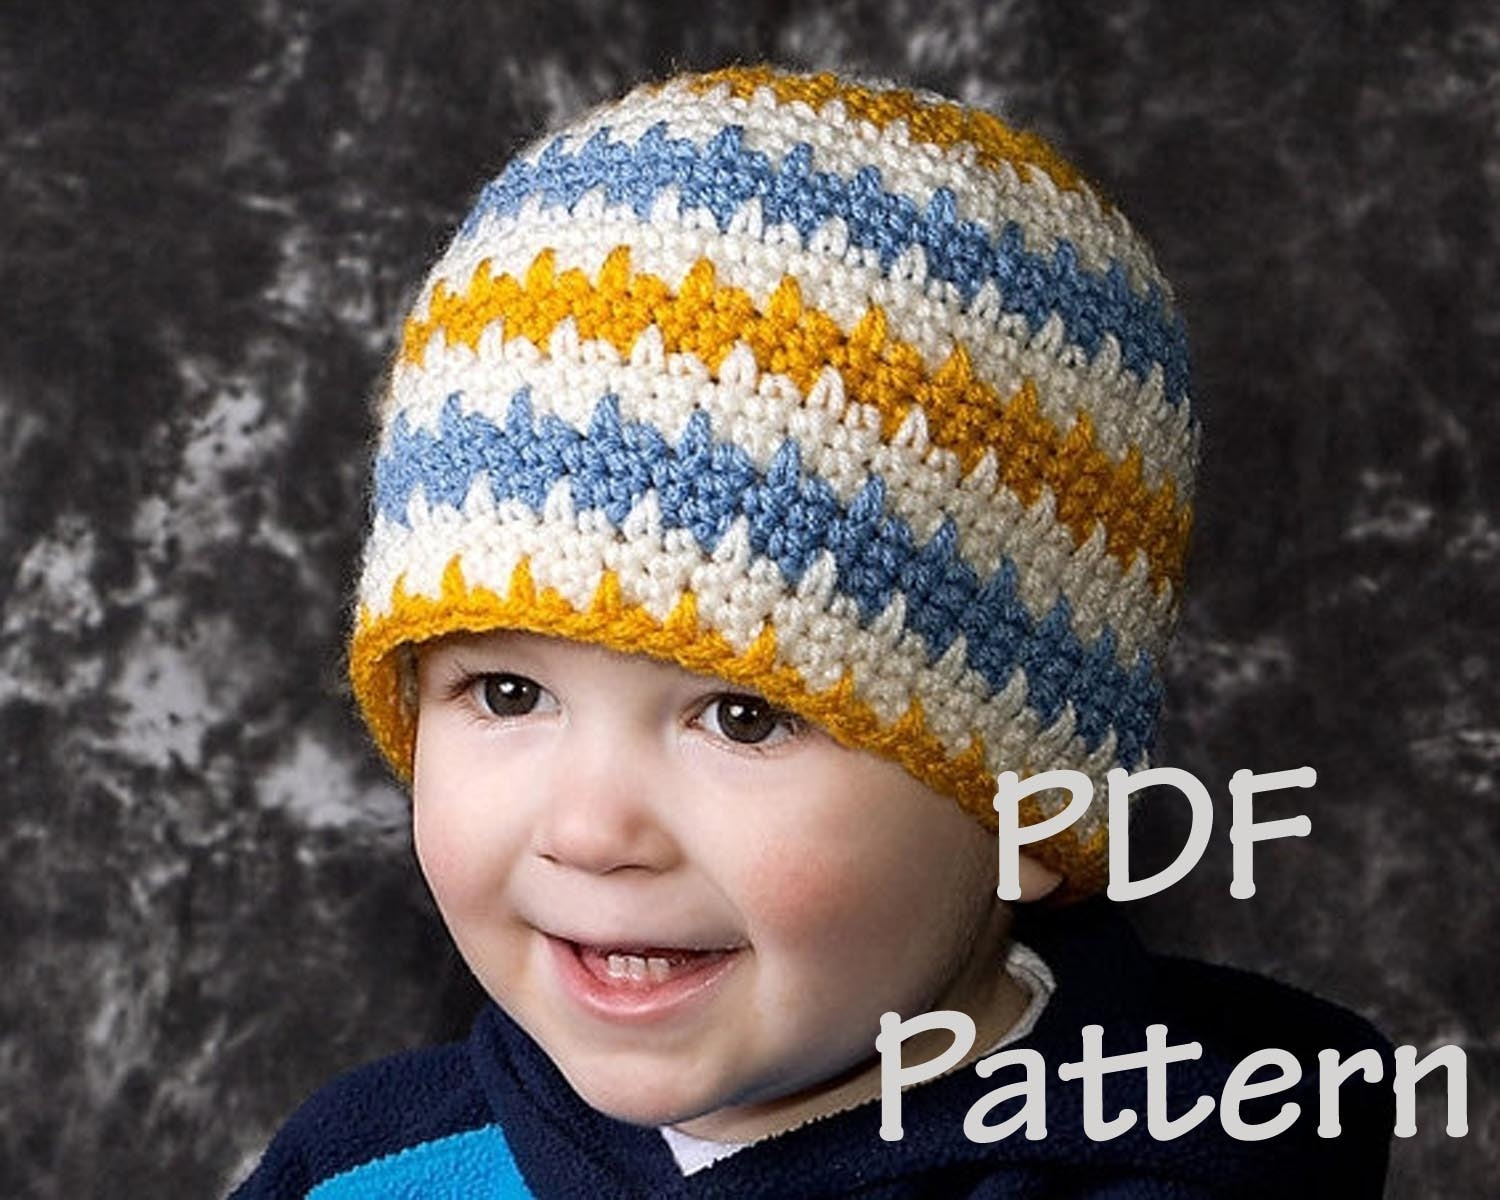 Instand download permission to sell Easy crochet beanie